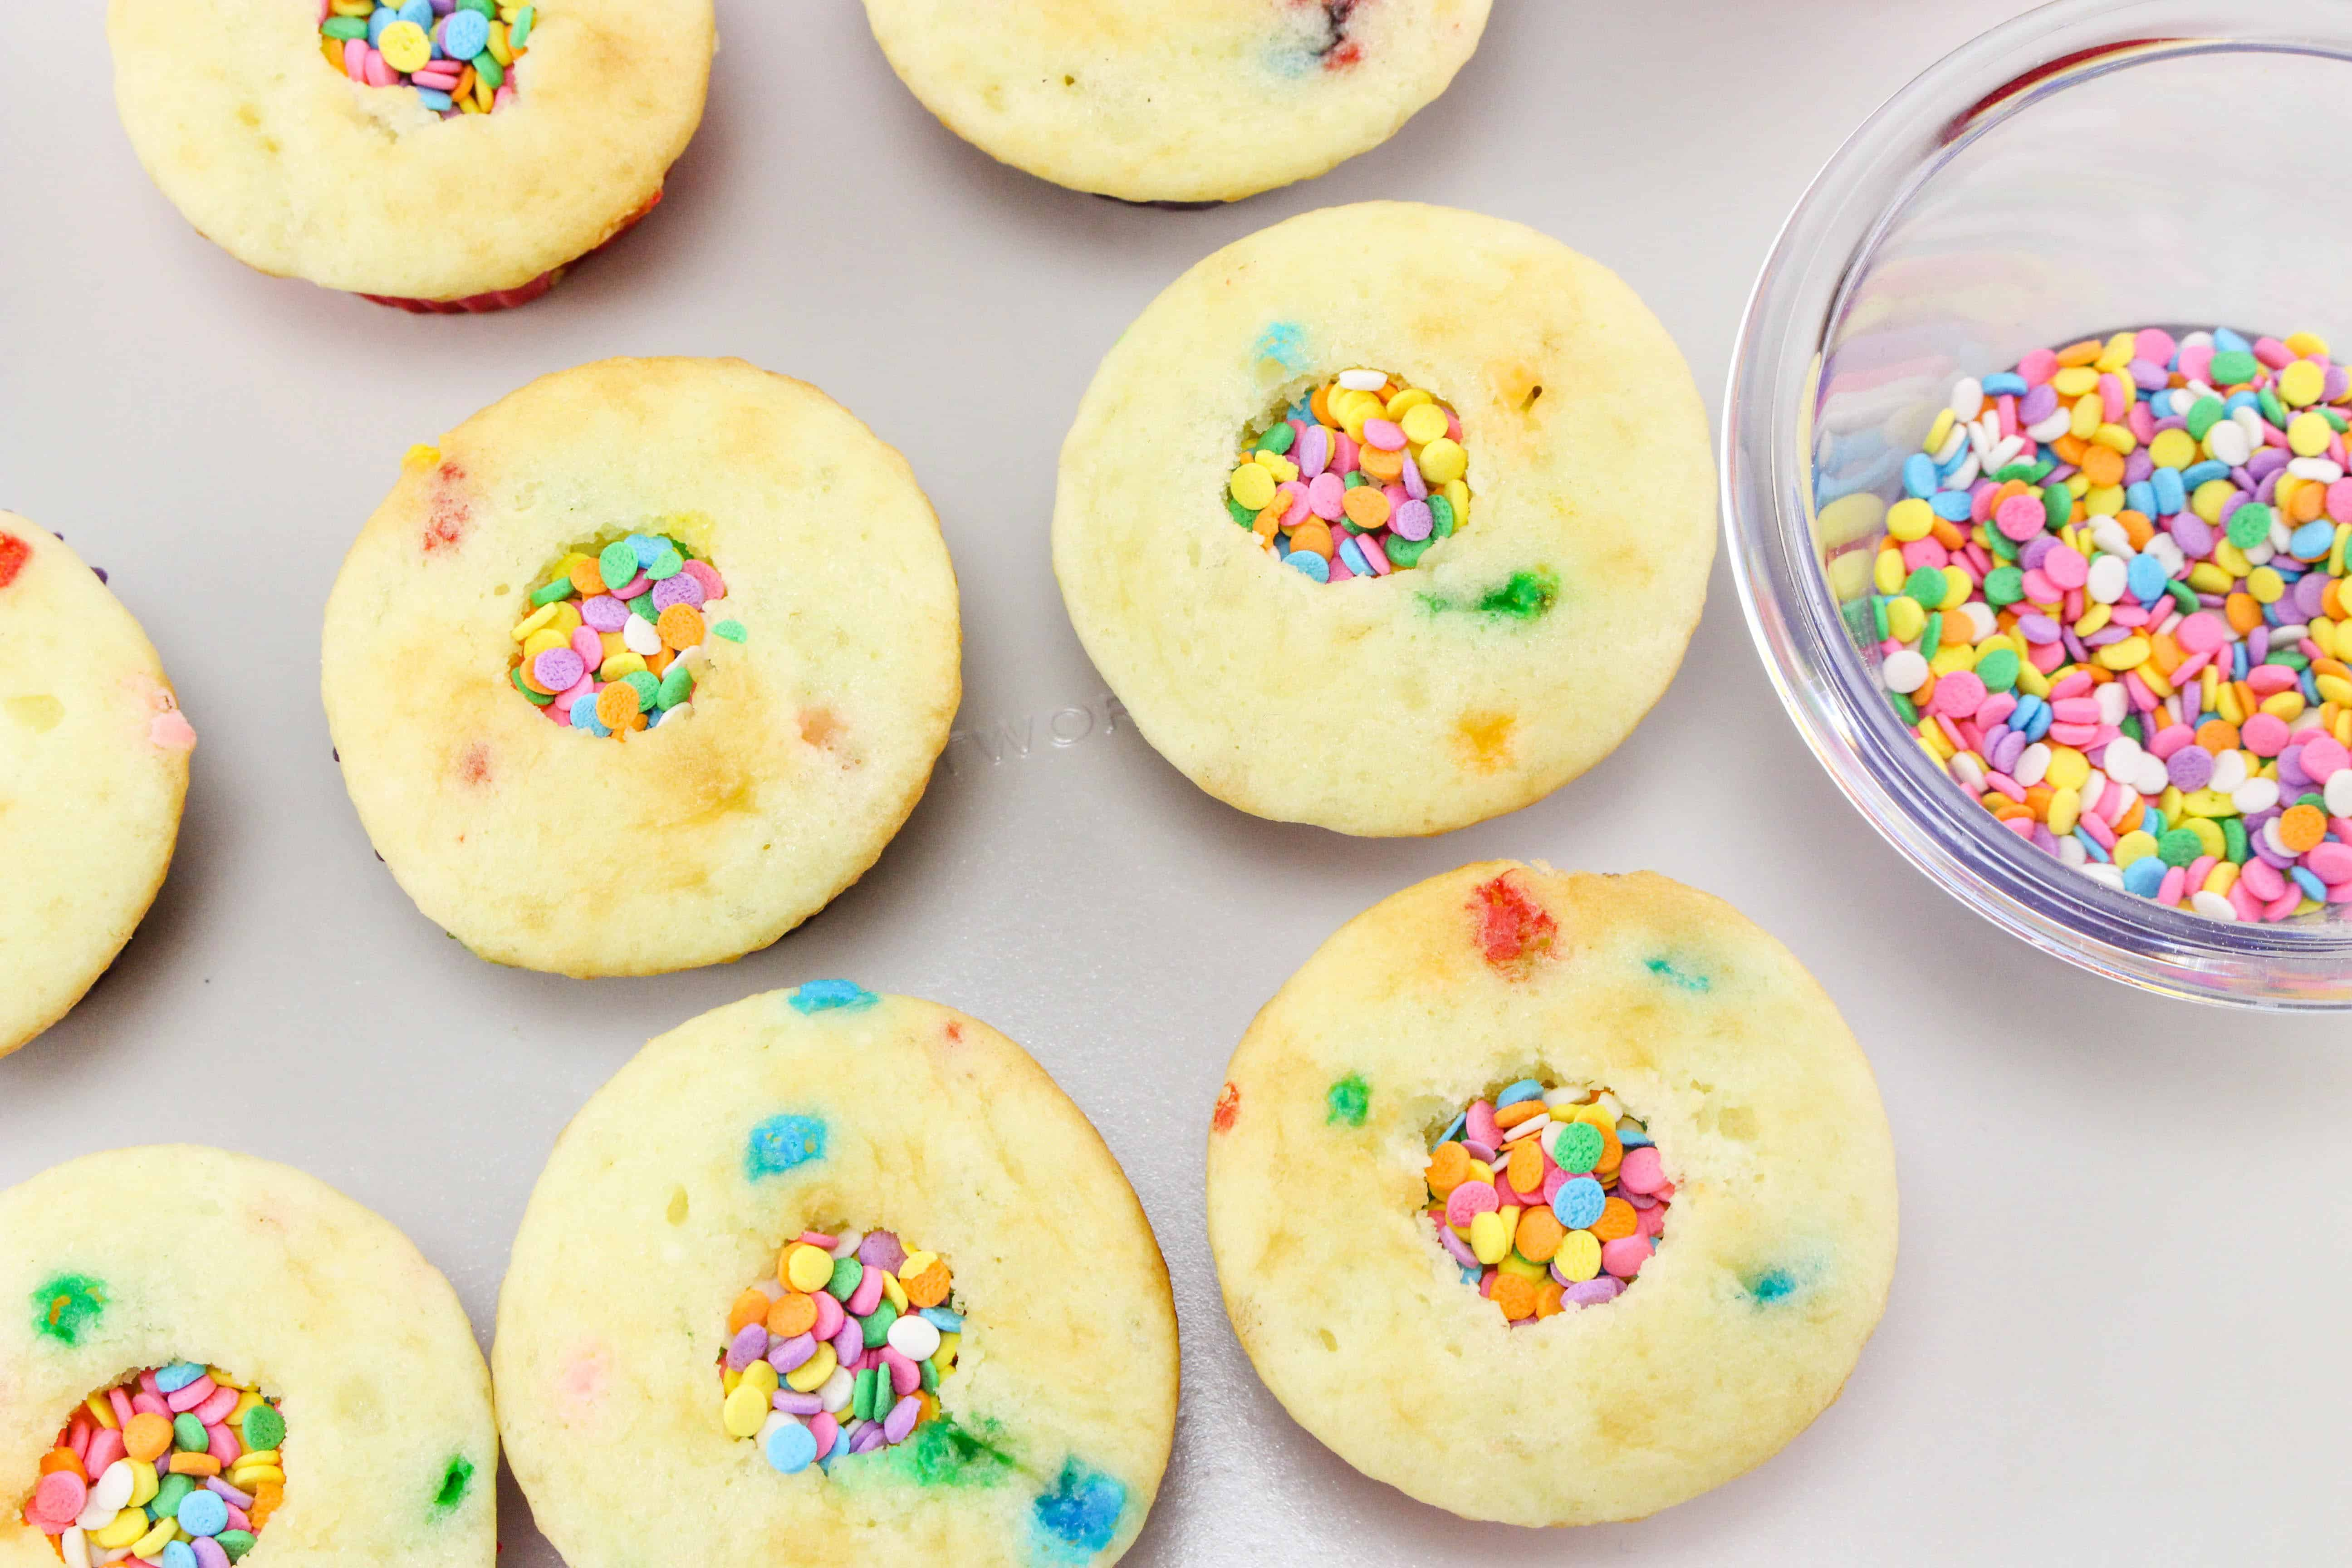 sprinkles in Oh the Places You'll Go Cupcakes